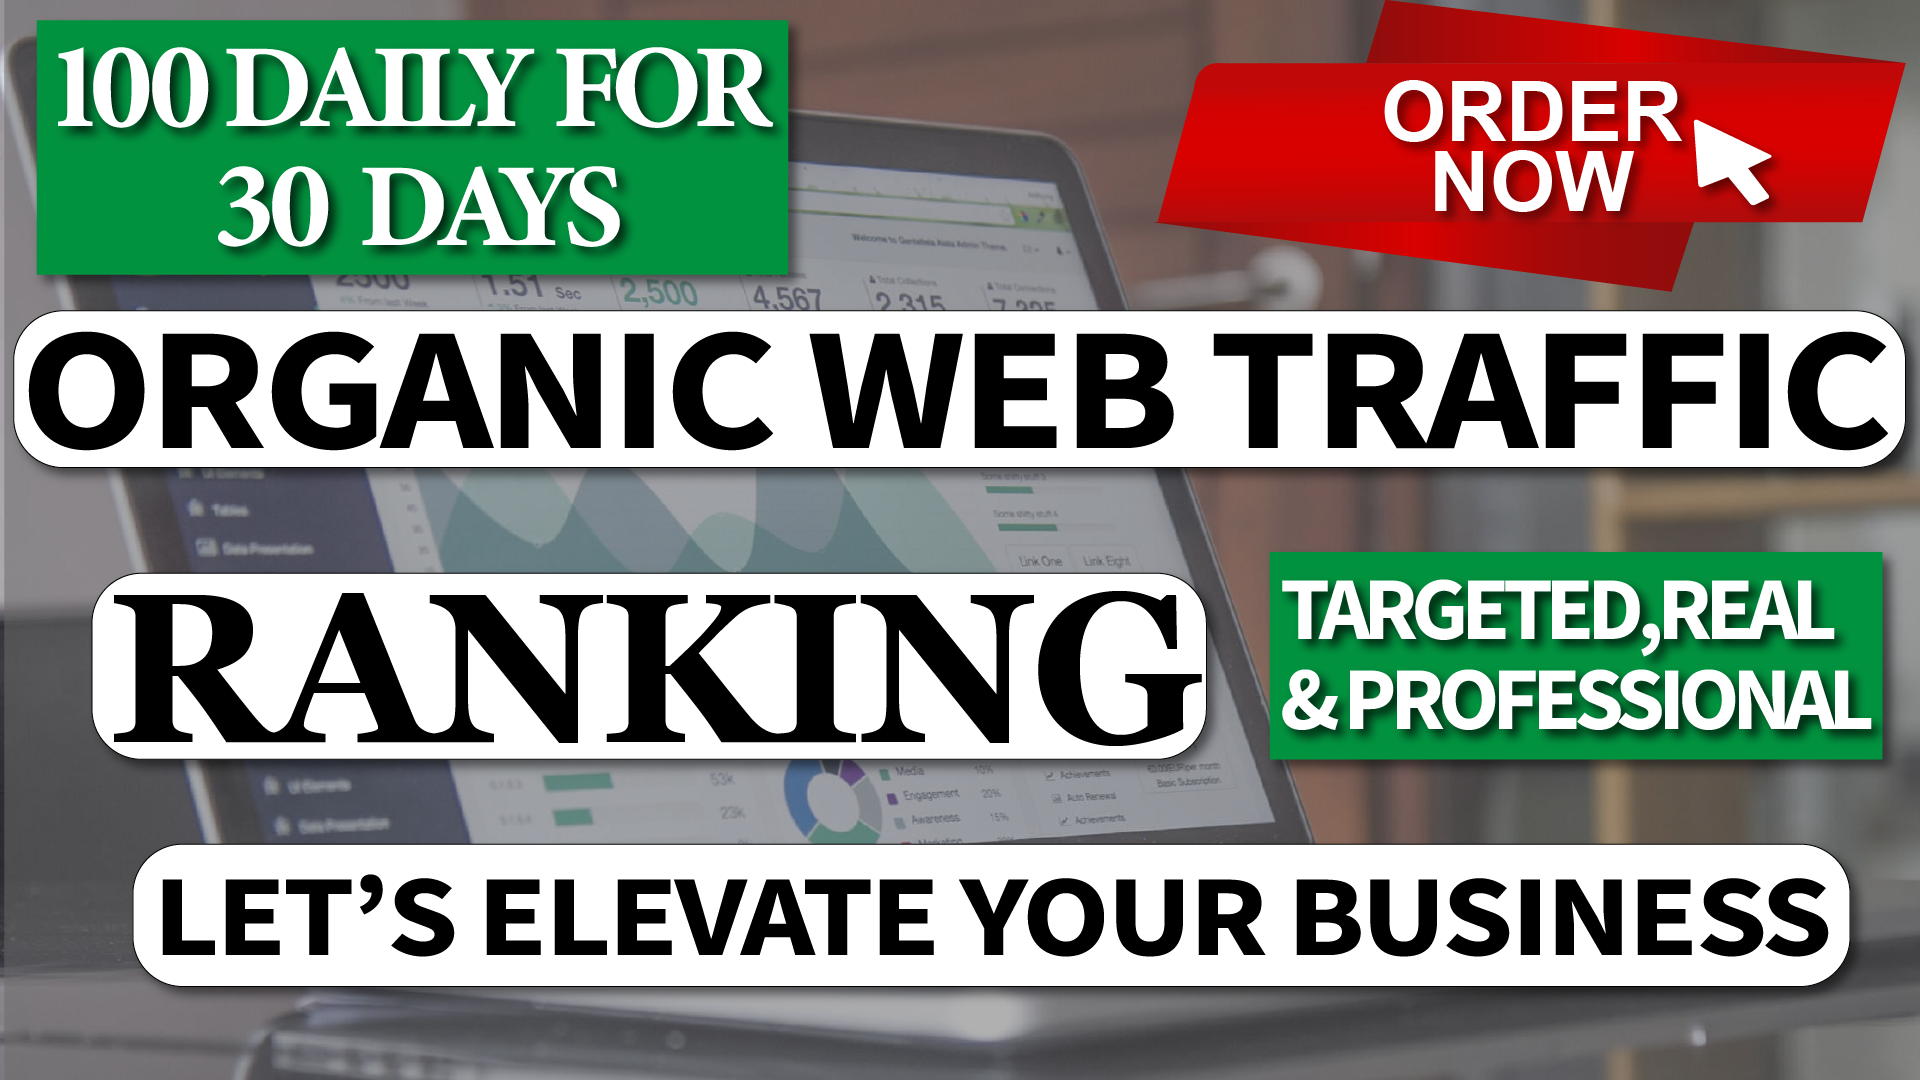 Real Organic Traffic for 30 Days Non Stop